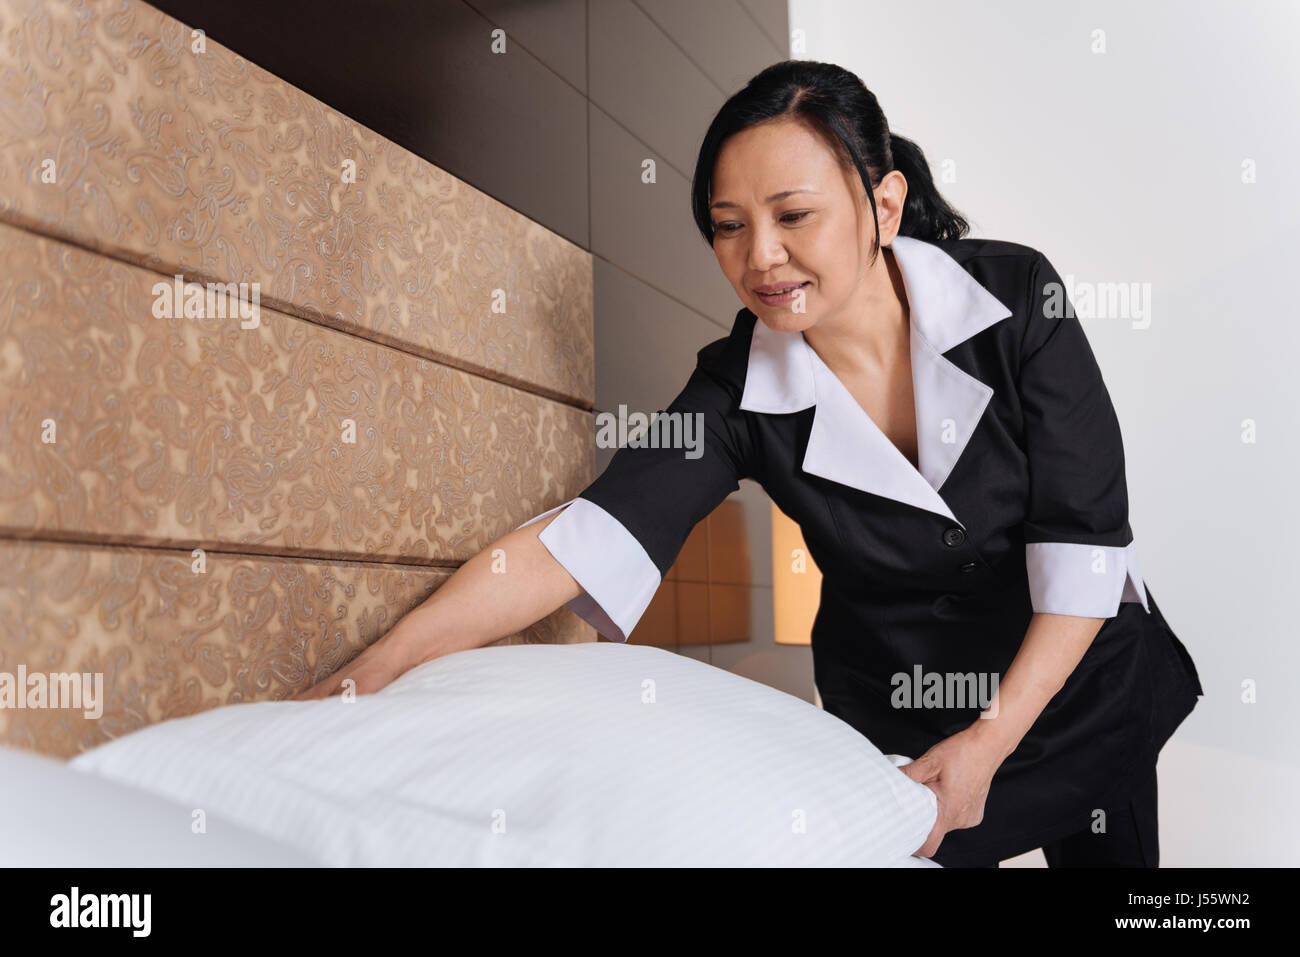 Nice pleasant woman working in the hotel room - Stock Image